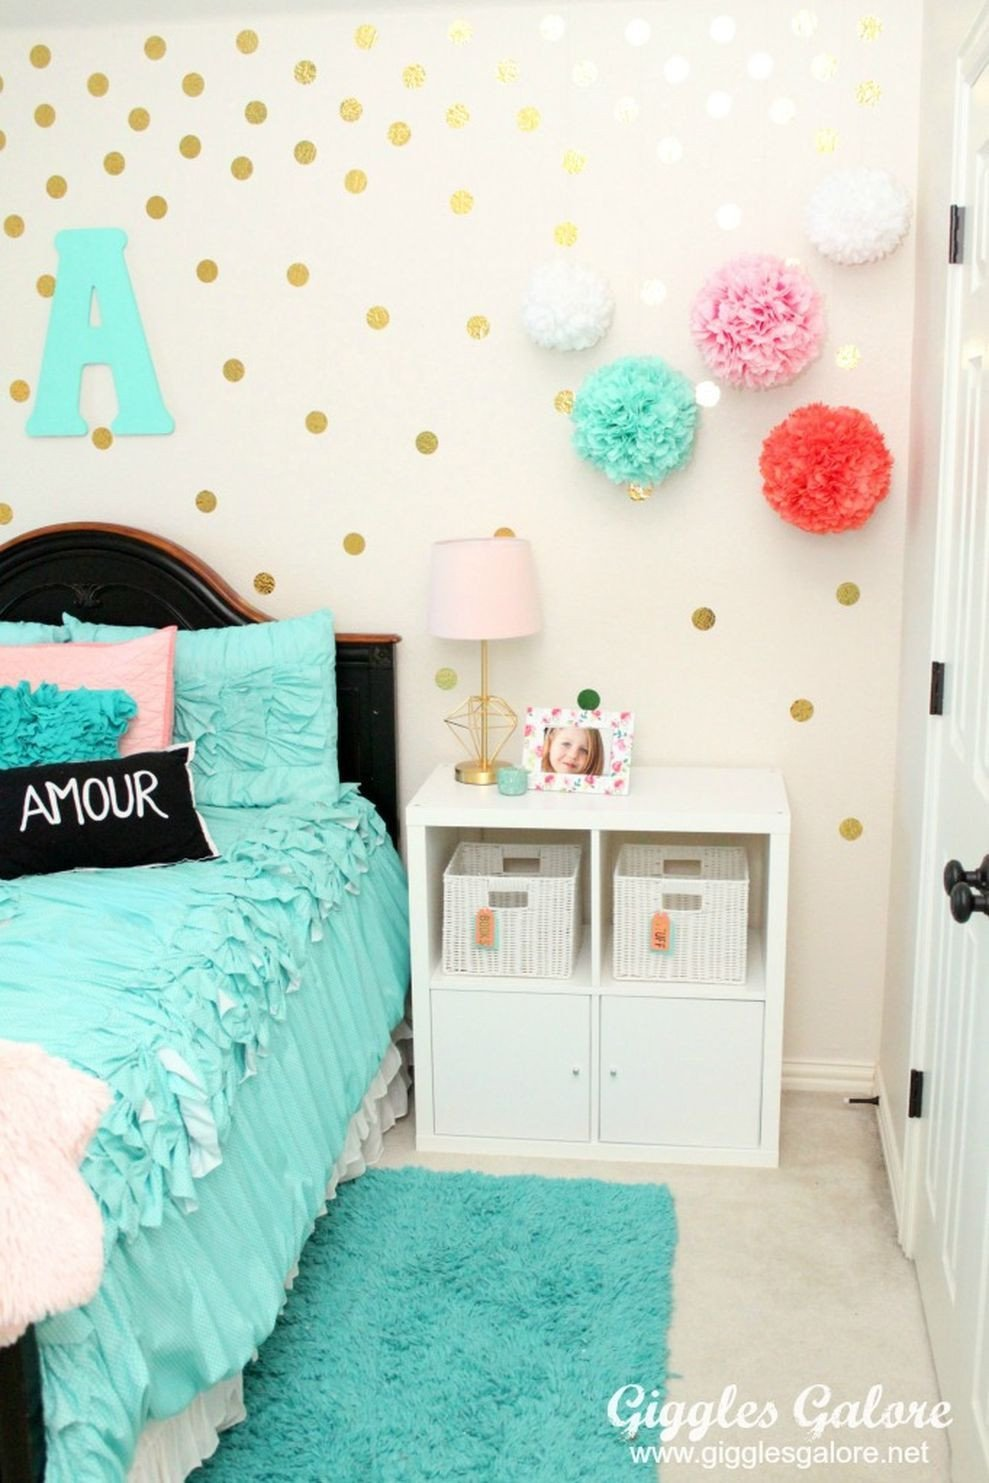 Purple and Teal Bedroom New 86 Cute Bedroom Design Ideas with Pink and Green Walls